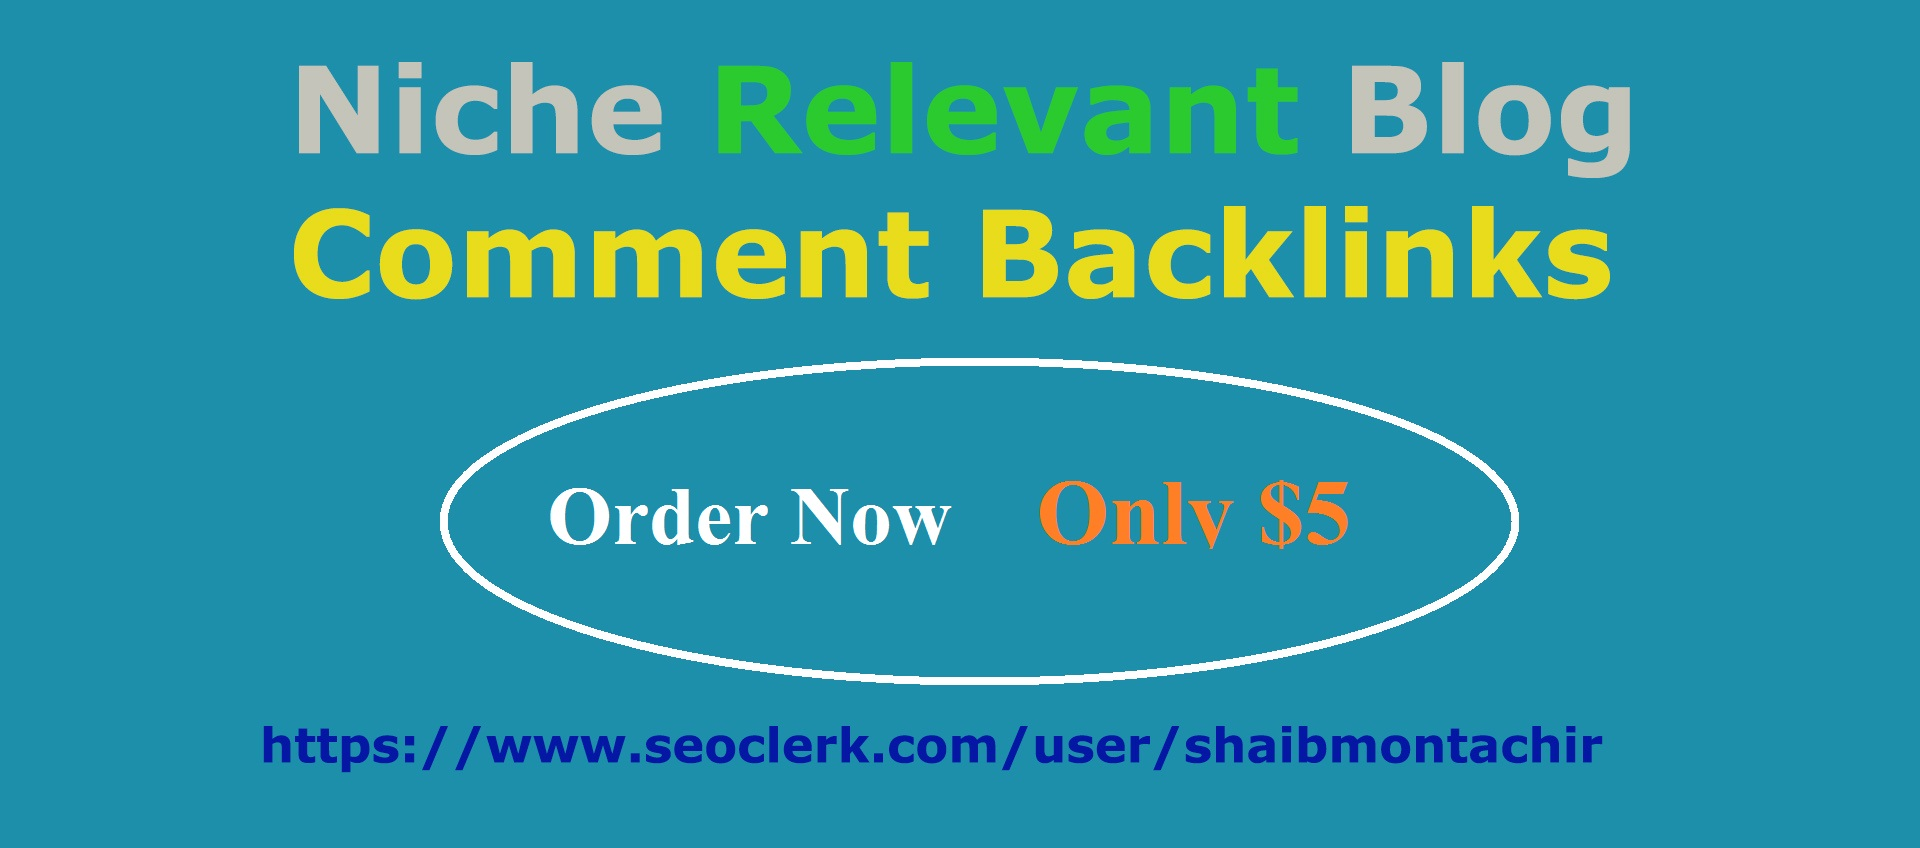 Provide 40 Niche Relevant Blog Comment Backlinks